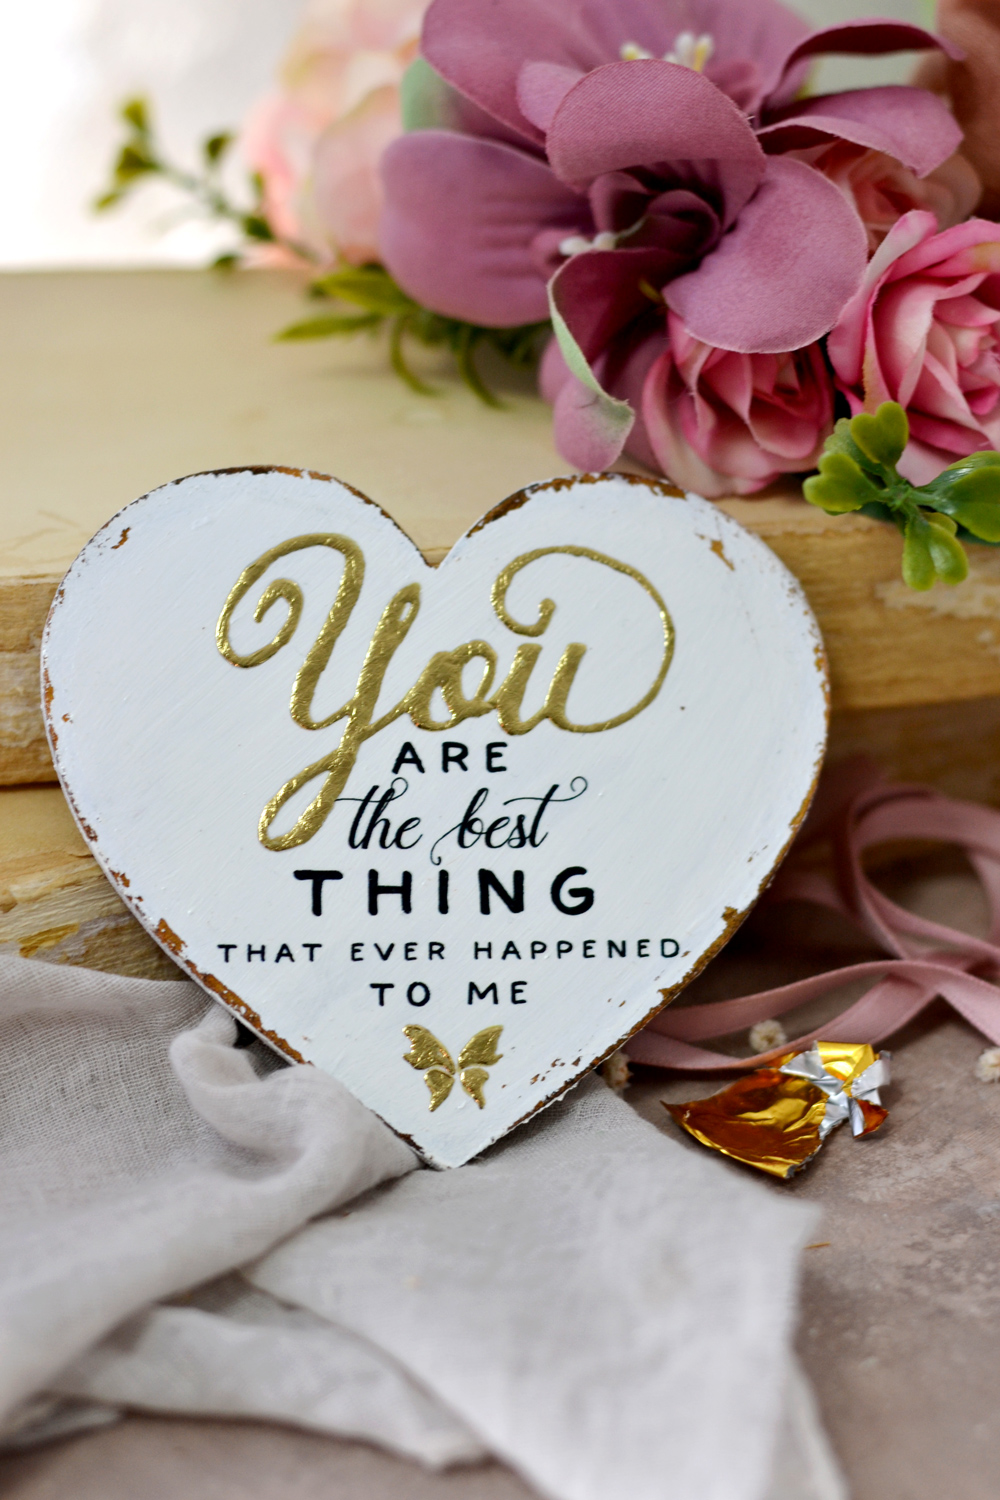 These gold hearts with love messages can be personalized with something meaningful to you and will make the perfect gifts for Valentine's day!